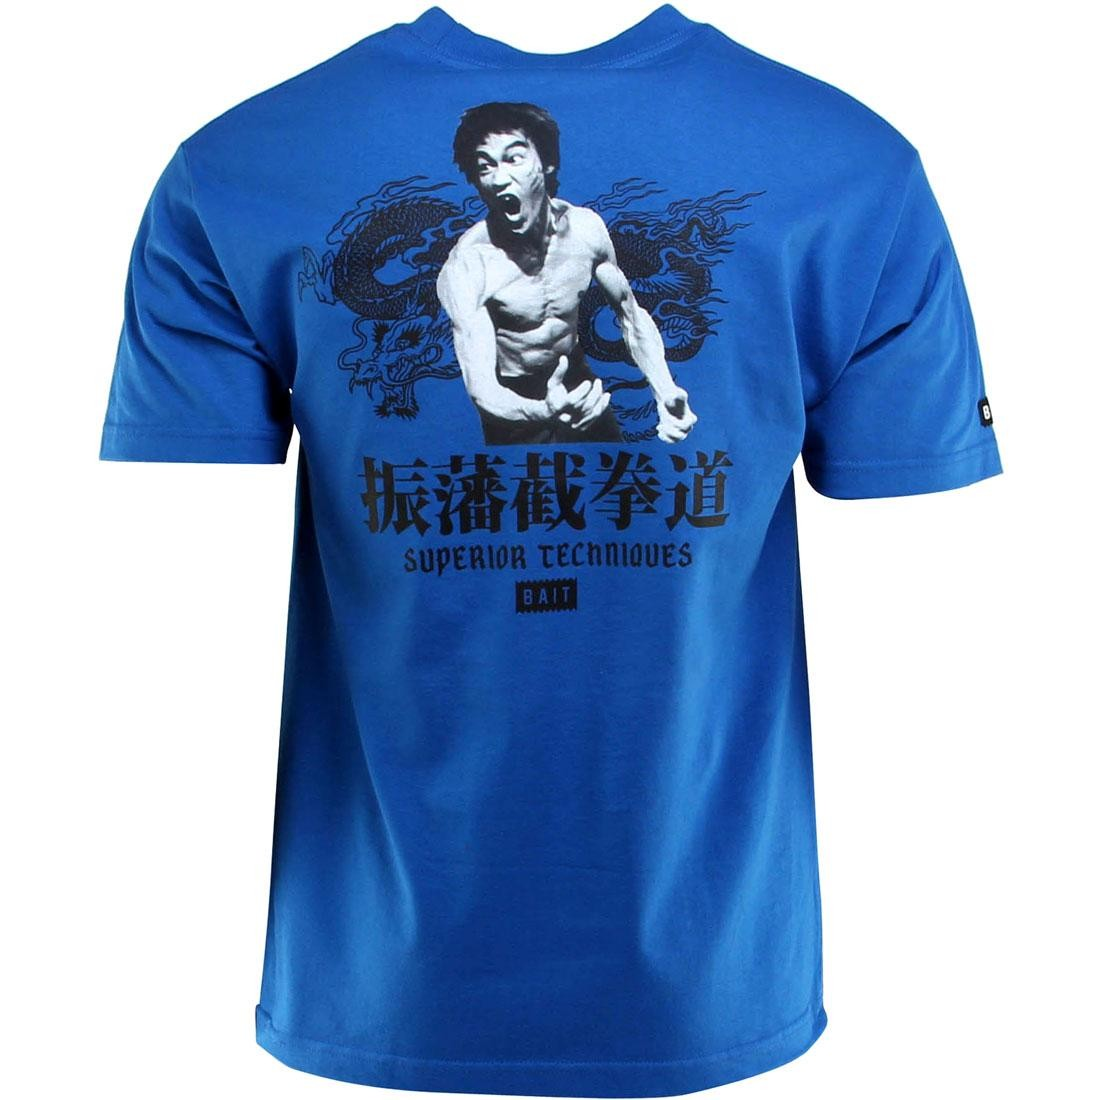 BAIT x Bruce Lee Superior Techniques Tee (blue / royal blue / black)